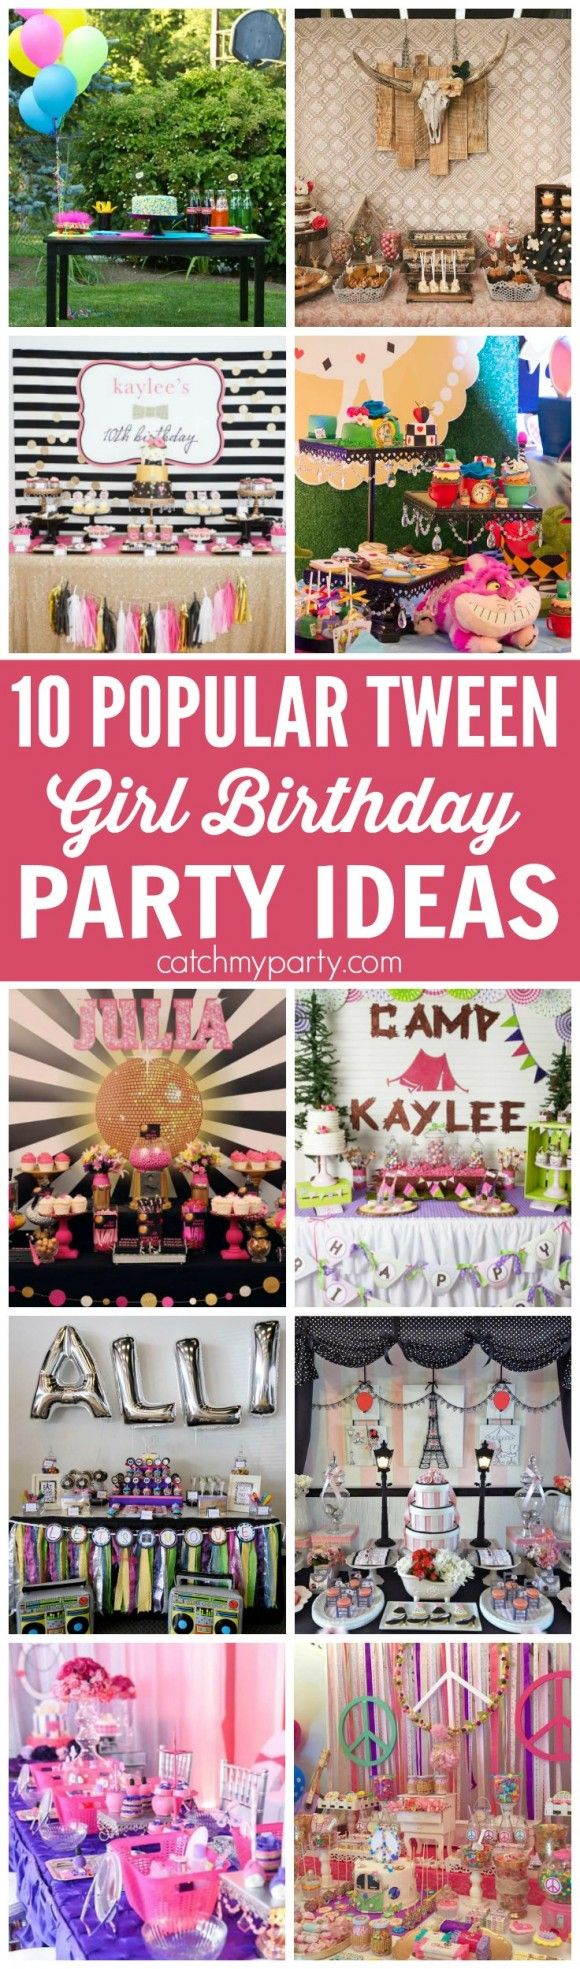 10 Of The Most Popular Tween Girl Birthday Party Ideas